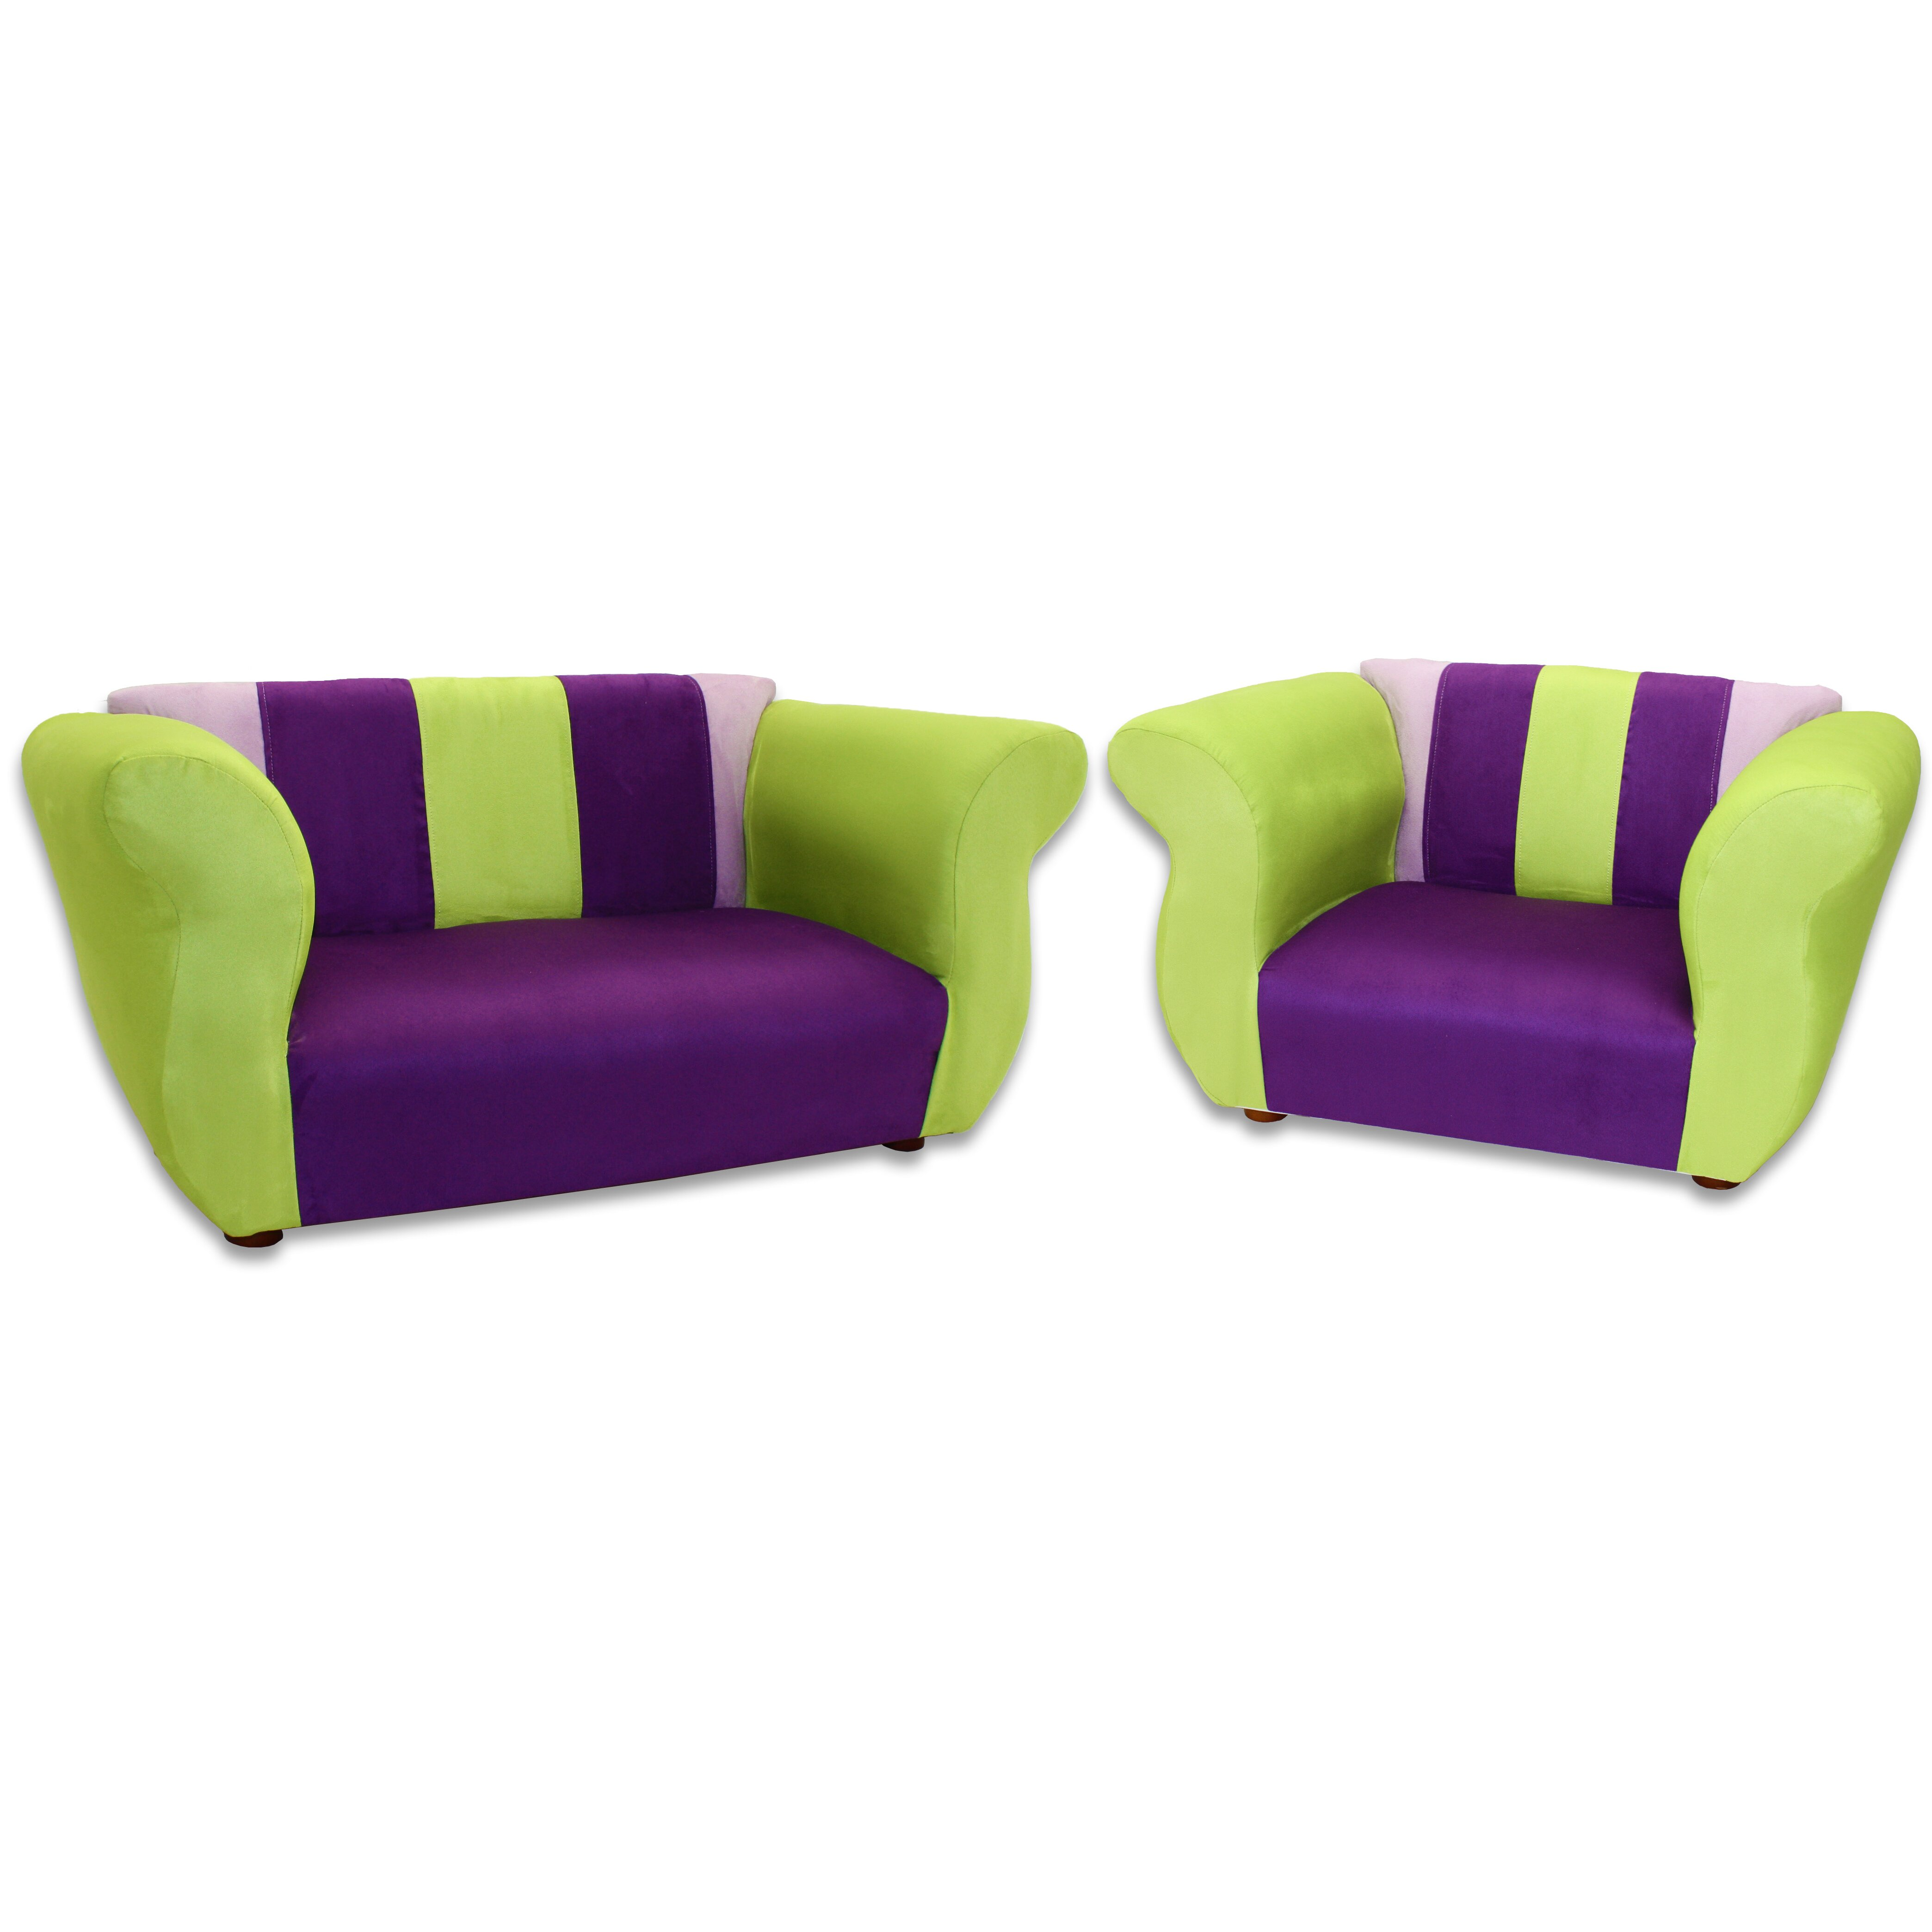 Keet Fancy 2 Piece Kids Sofa And Chair Set Reviews Wayfair